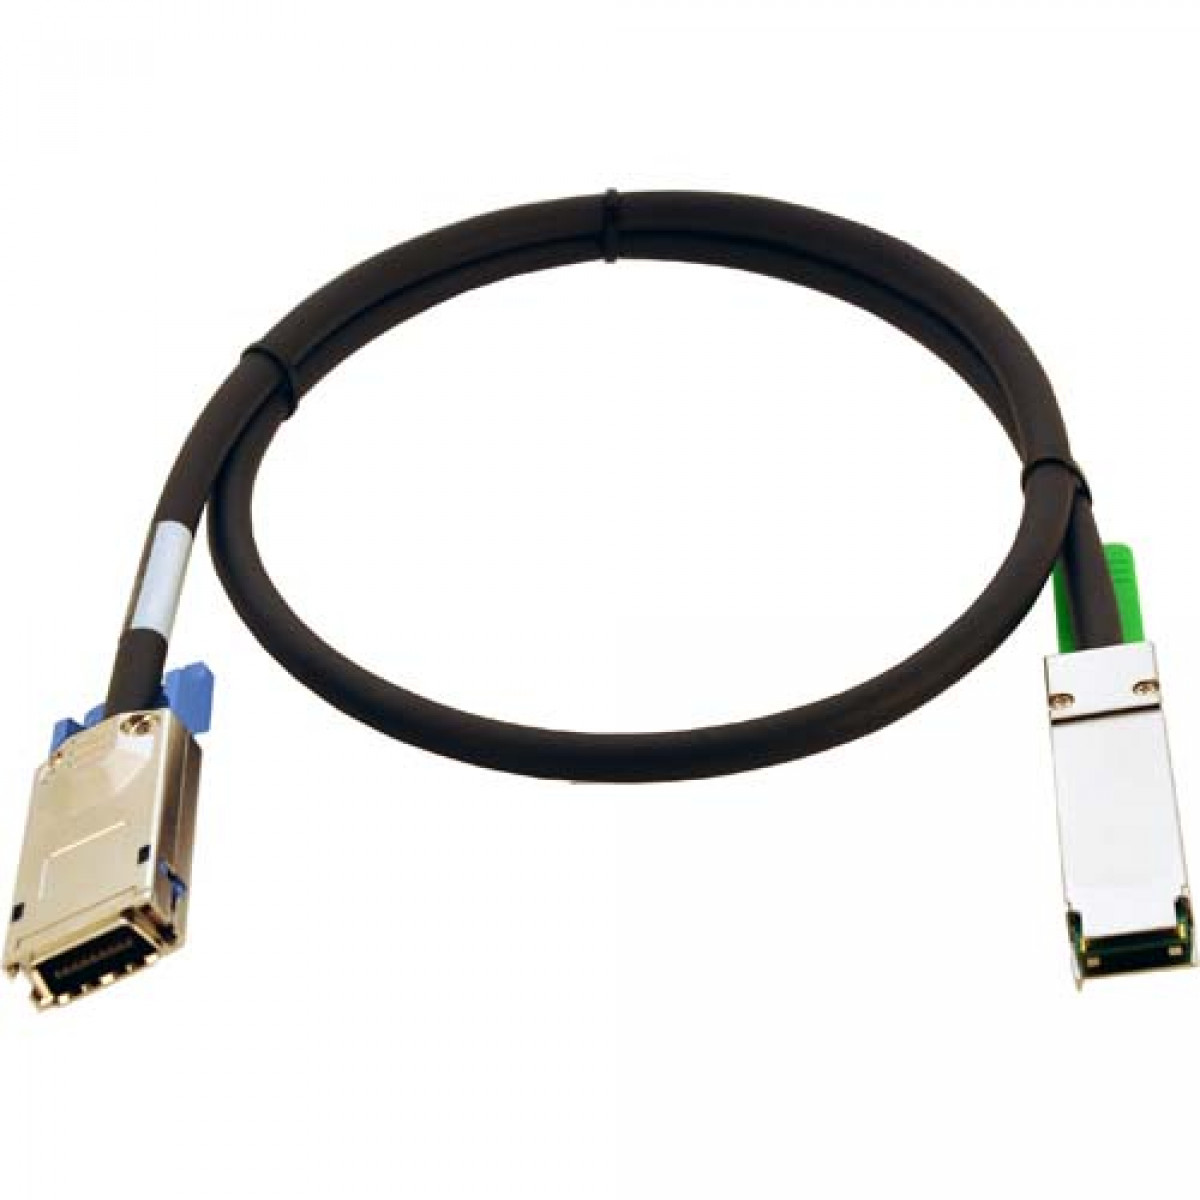 4m QSFP-CX4 Passive Infiniband 10GBASE-CX4 DDR/SDR Copper Cable